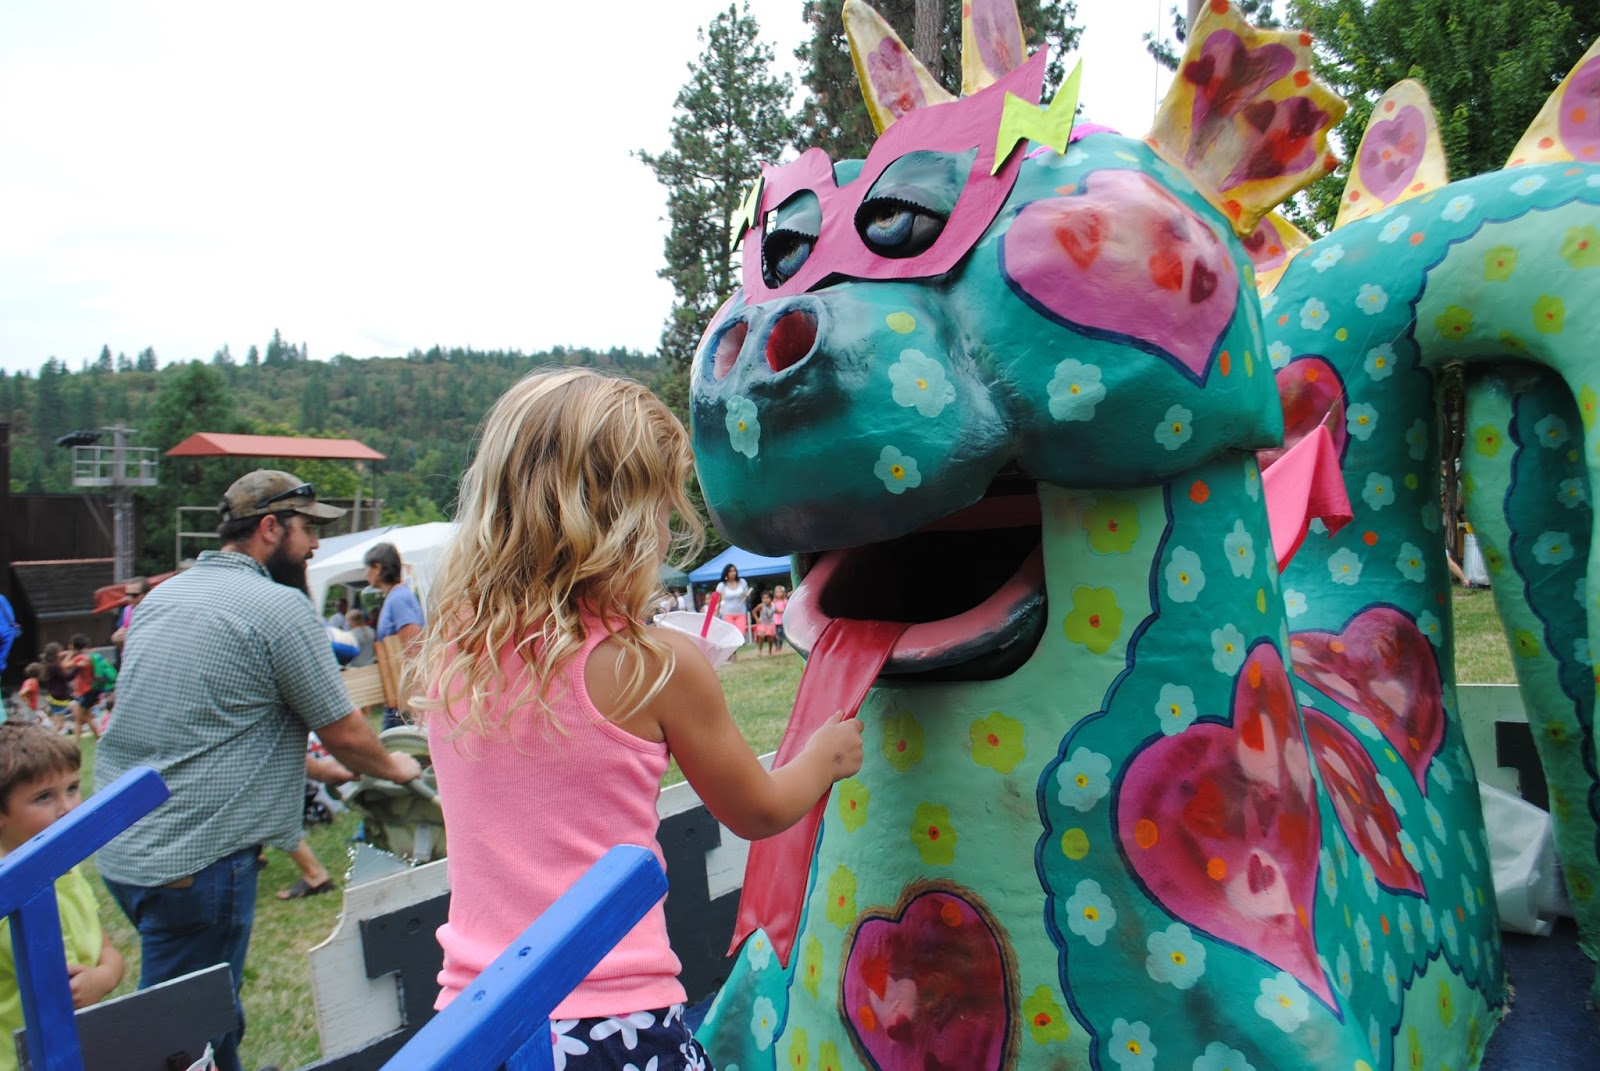 CHILDREN'S FESTIVAL in JACKSONVILLE, OREGON - MAGICAL FUN FOR THE COMMUNITY - What to do in Southern Oregon - Things to do - Kid-Friendly - Events